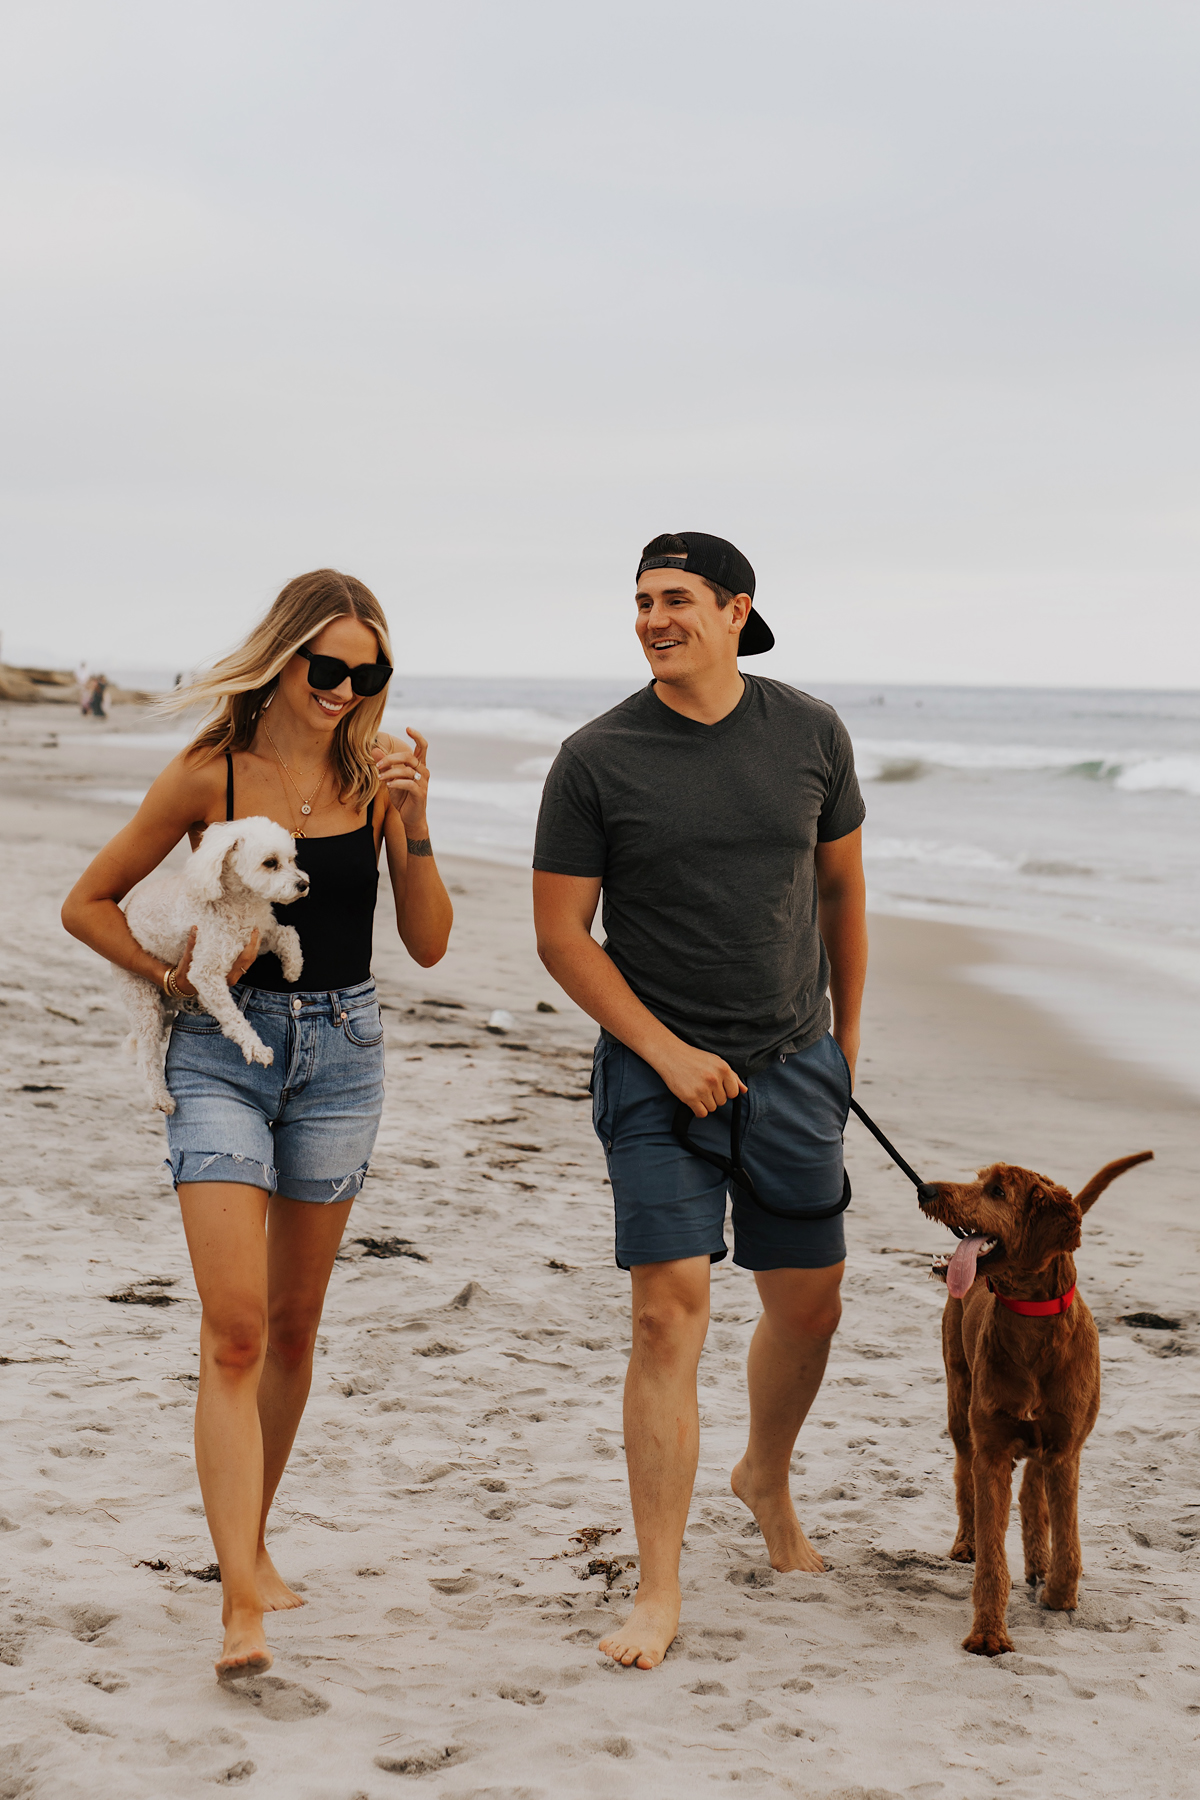 Fashion Jackson Wearing Black One Piece Swimsuit Long Denim Shorts Will Wearing Tshirt Roark Shorts with dogs at San Diego Dog Beach